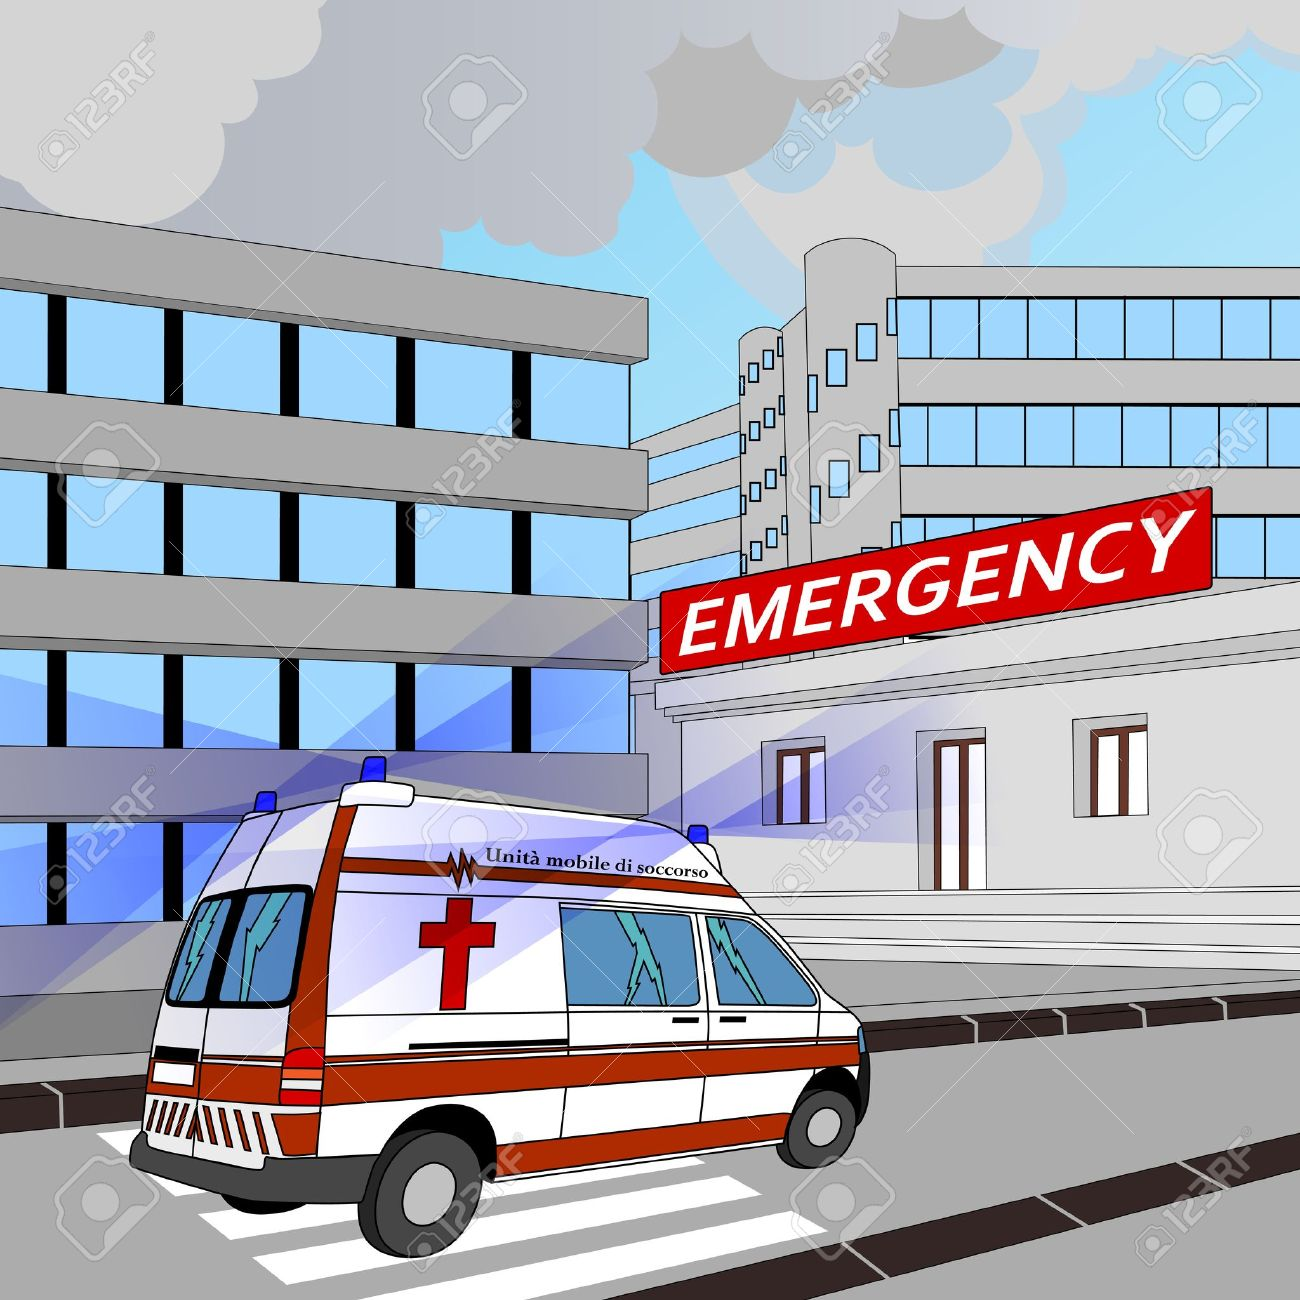 Clipart emergency room.